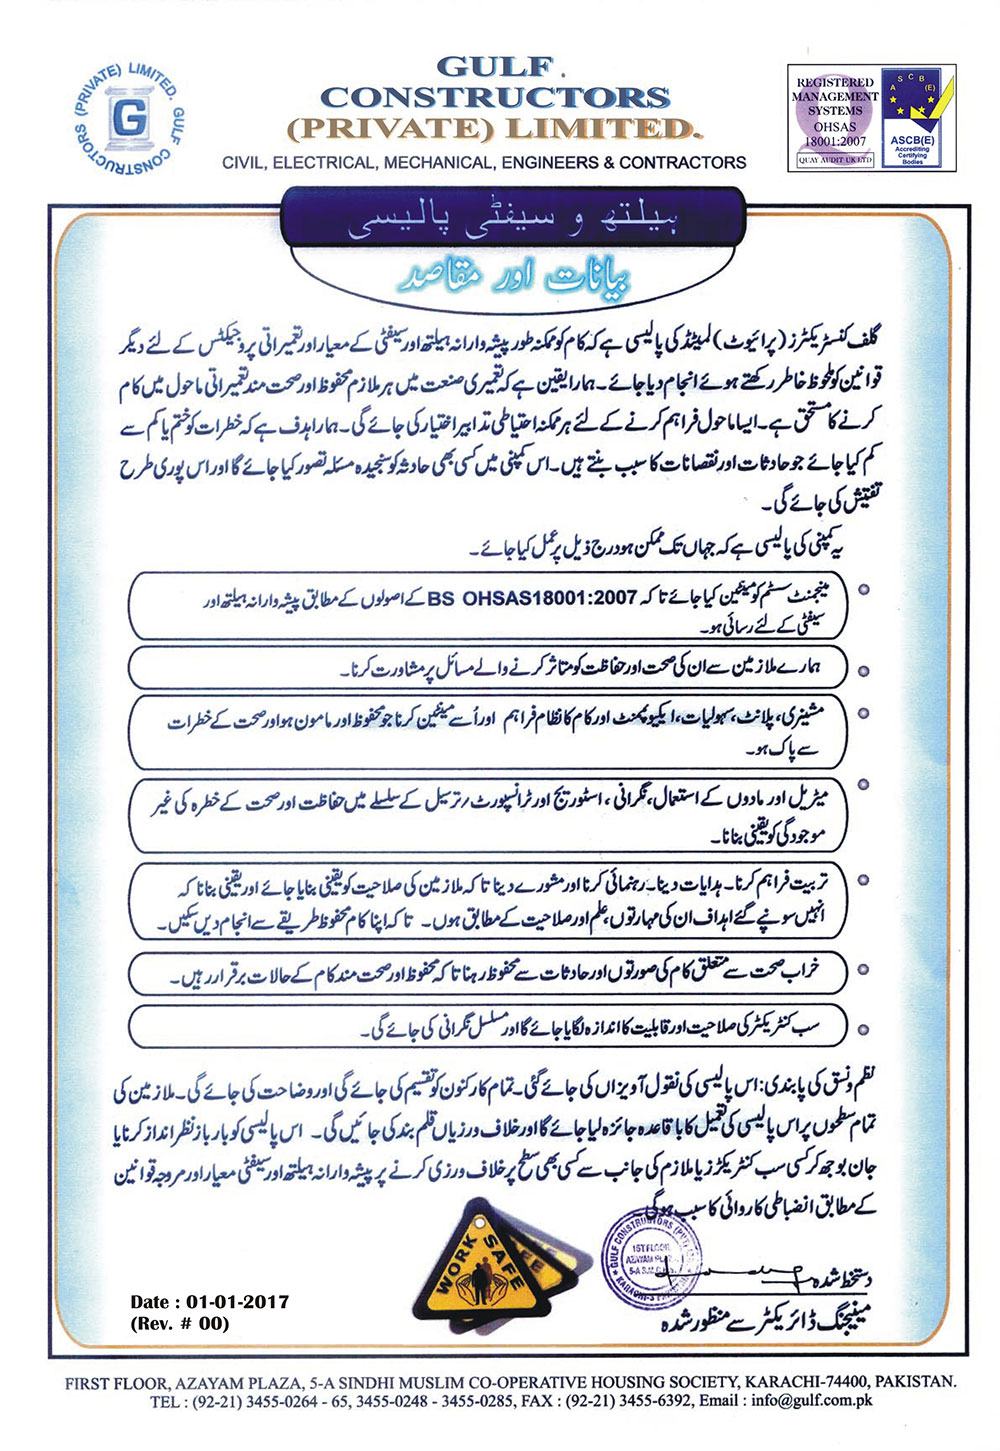 health safety policy in urdu gulf constructors